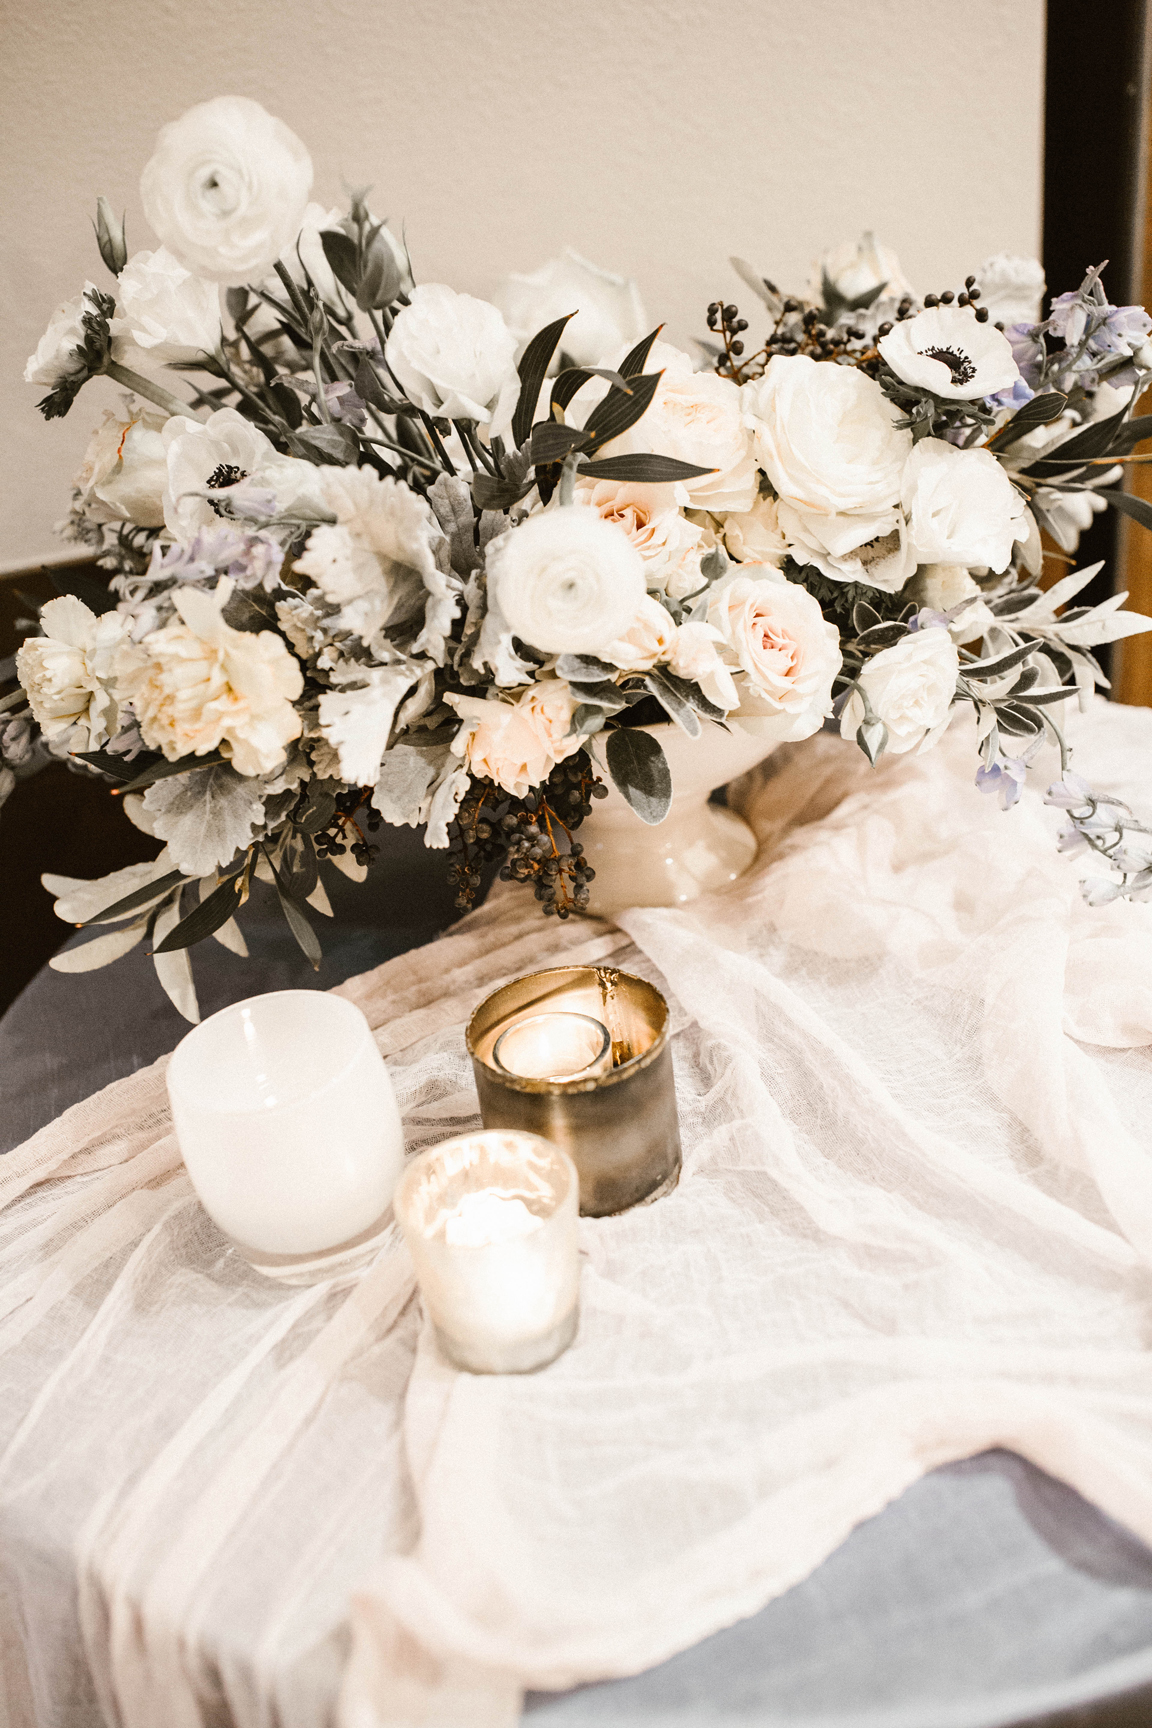 Columbia+Winery_Woodinville_2017_Weddings+In+Woodinville225.jpg